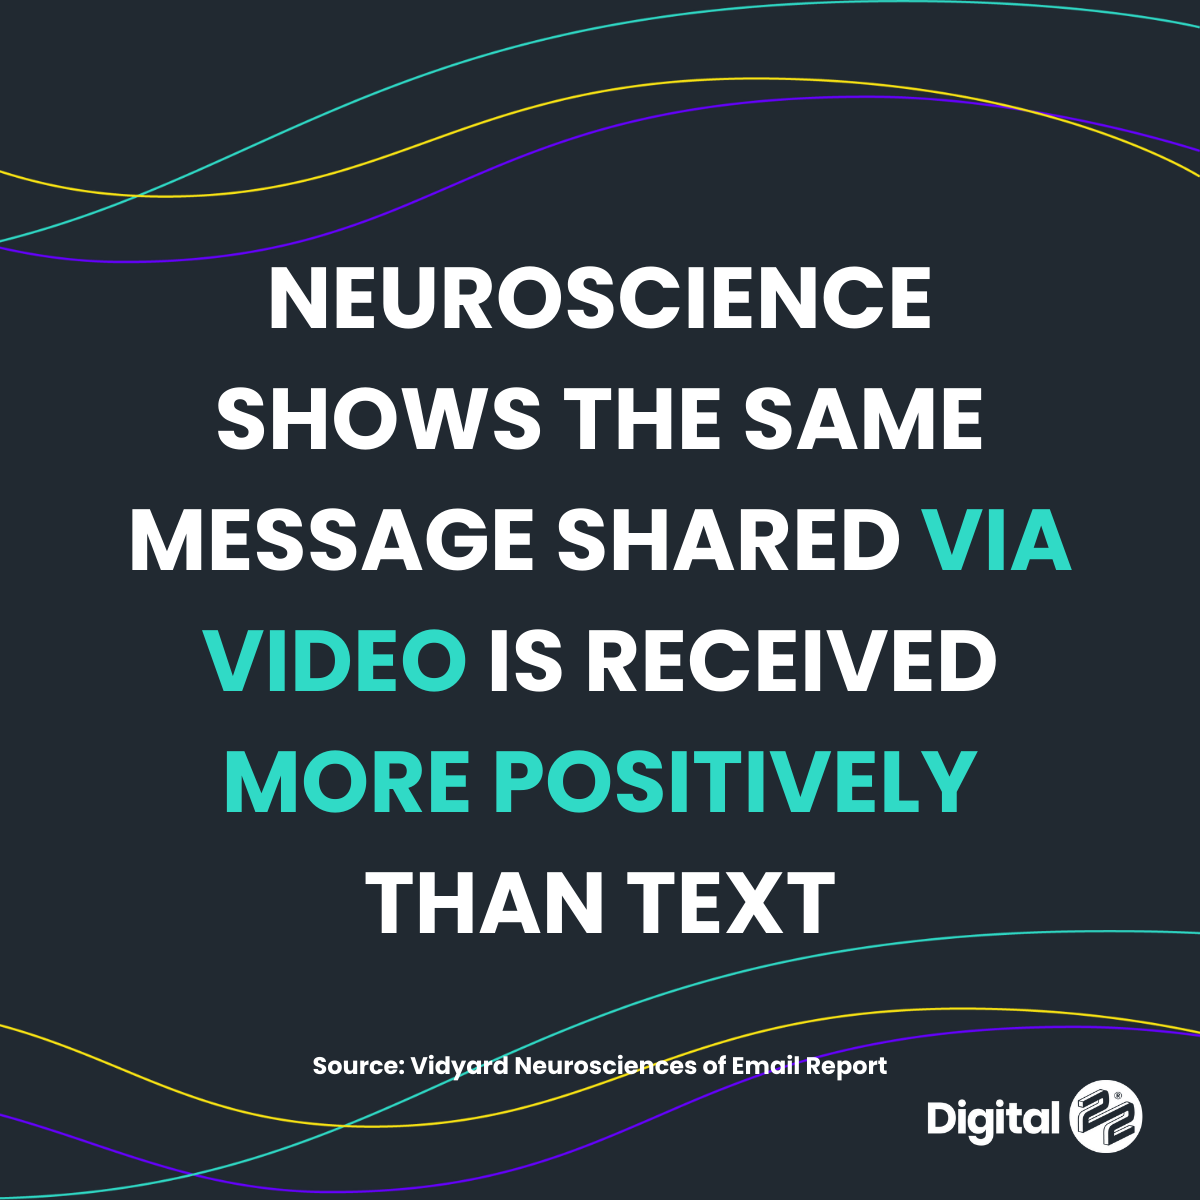 video more positive than text